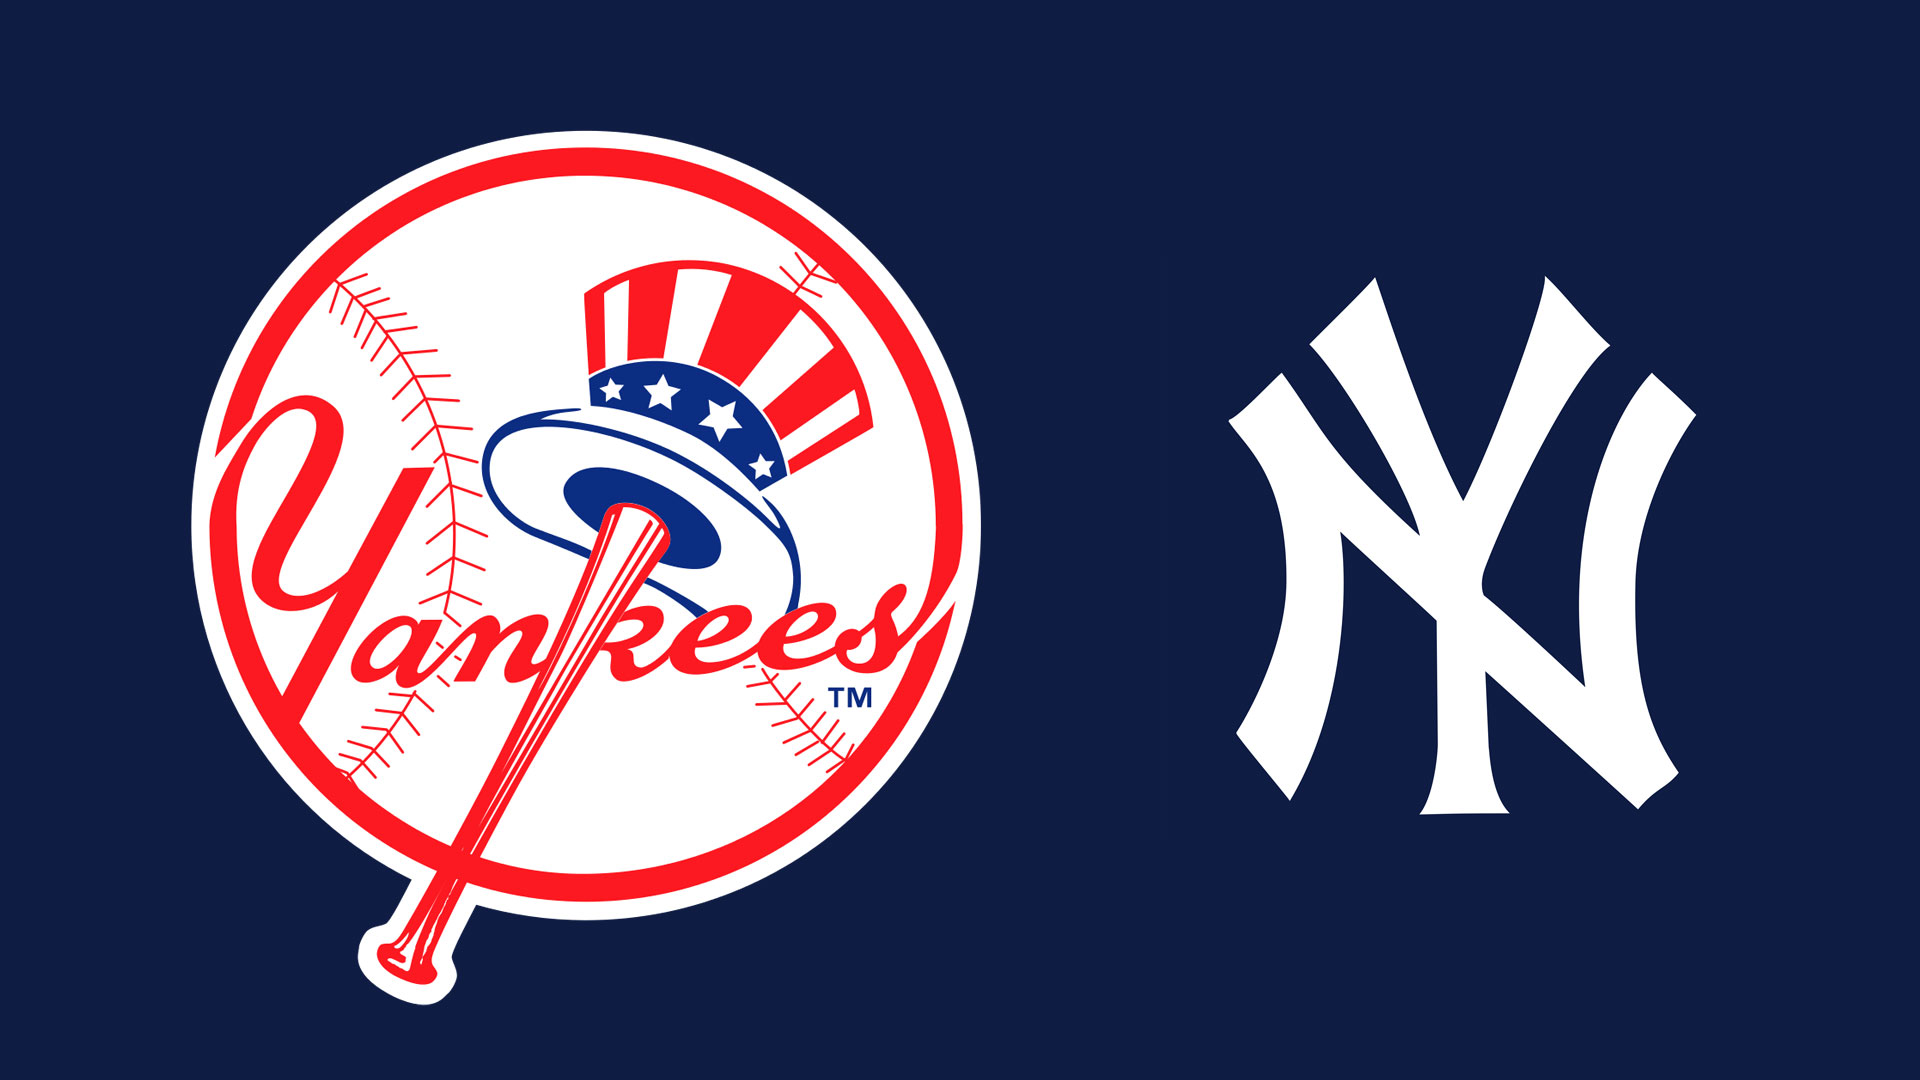 Description Mlb New York Yankees Logo Wallpaper From - New York Yankees , HD Wallpaper & Backgrounds